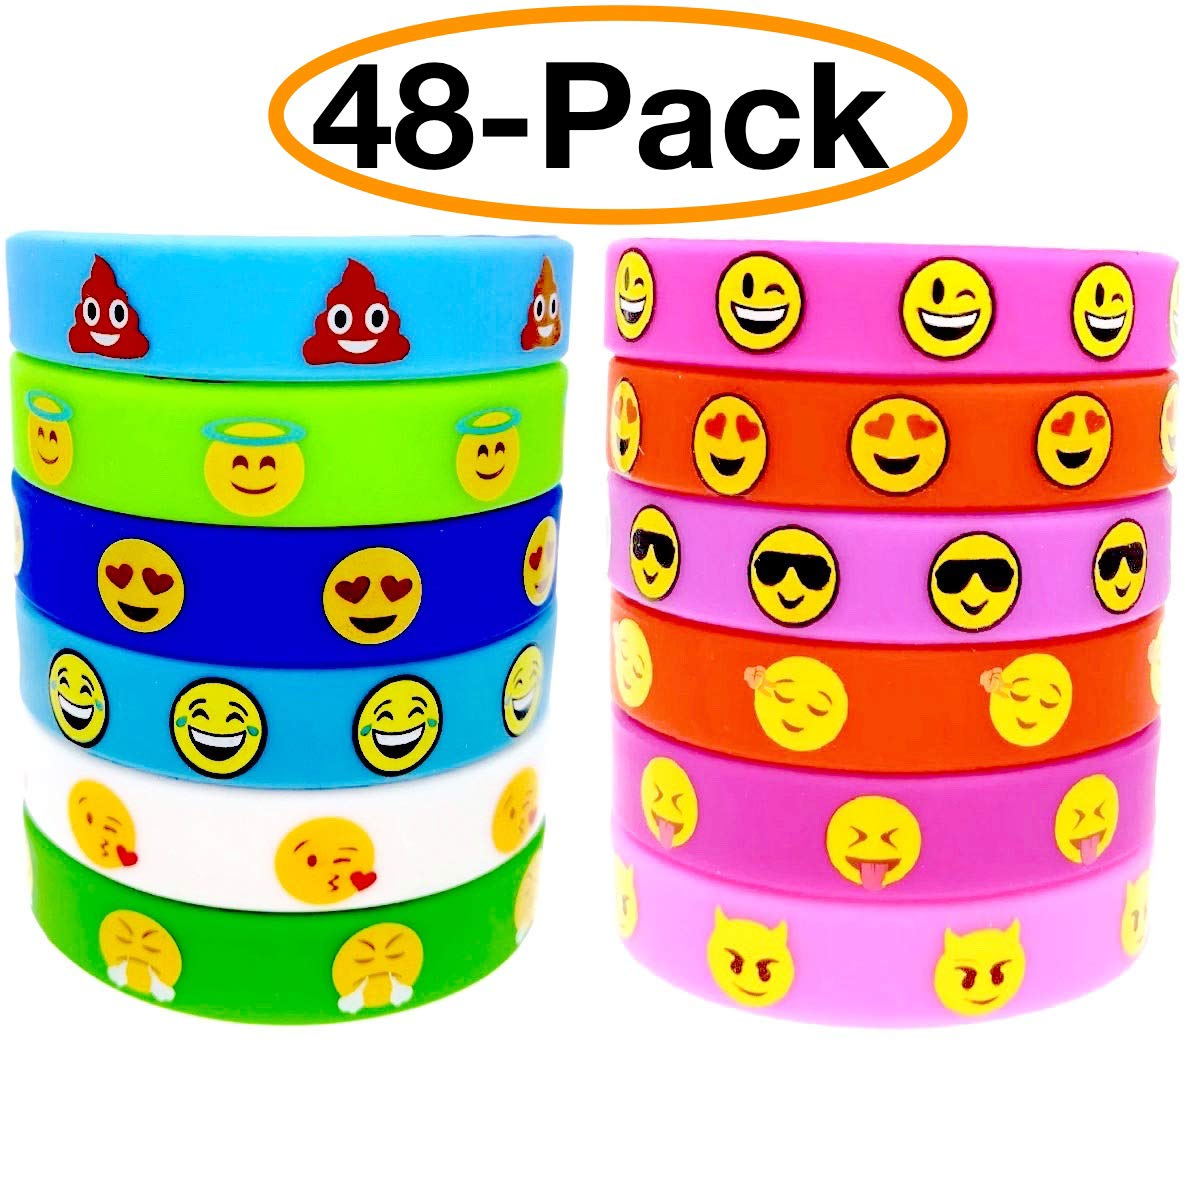 OHill 48 Pack Emoji Emoticons Silicone Wristbands Bracelets Kids Birthday Party Supplies Favors Prize Rewards, Kids Size by OHill